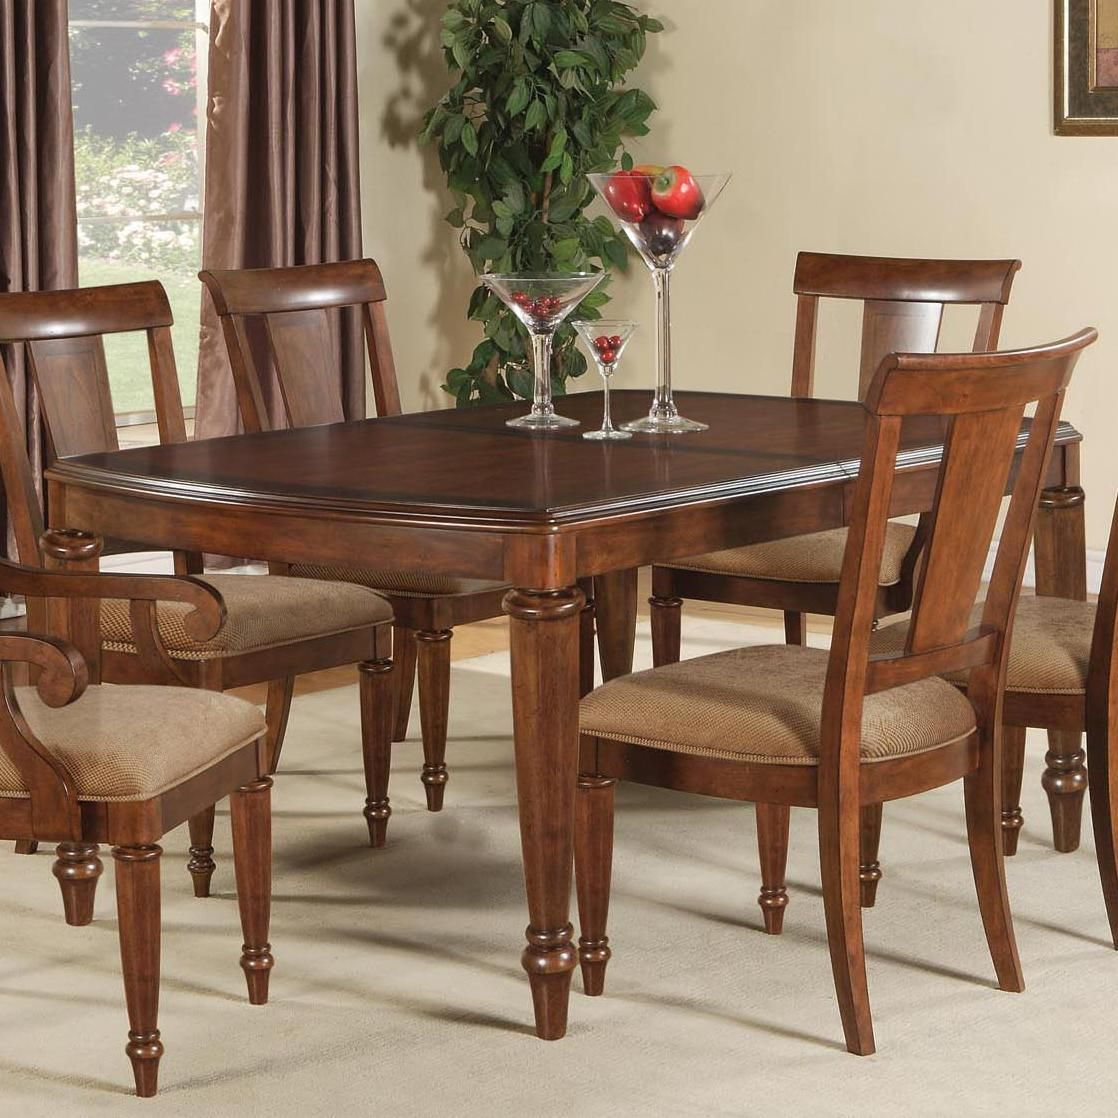 Brendon Dining Table By Flexsteel Wynwood Collection At Olinde S Furniture